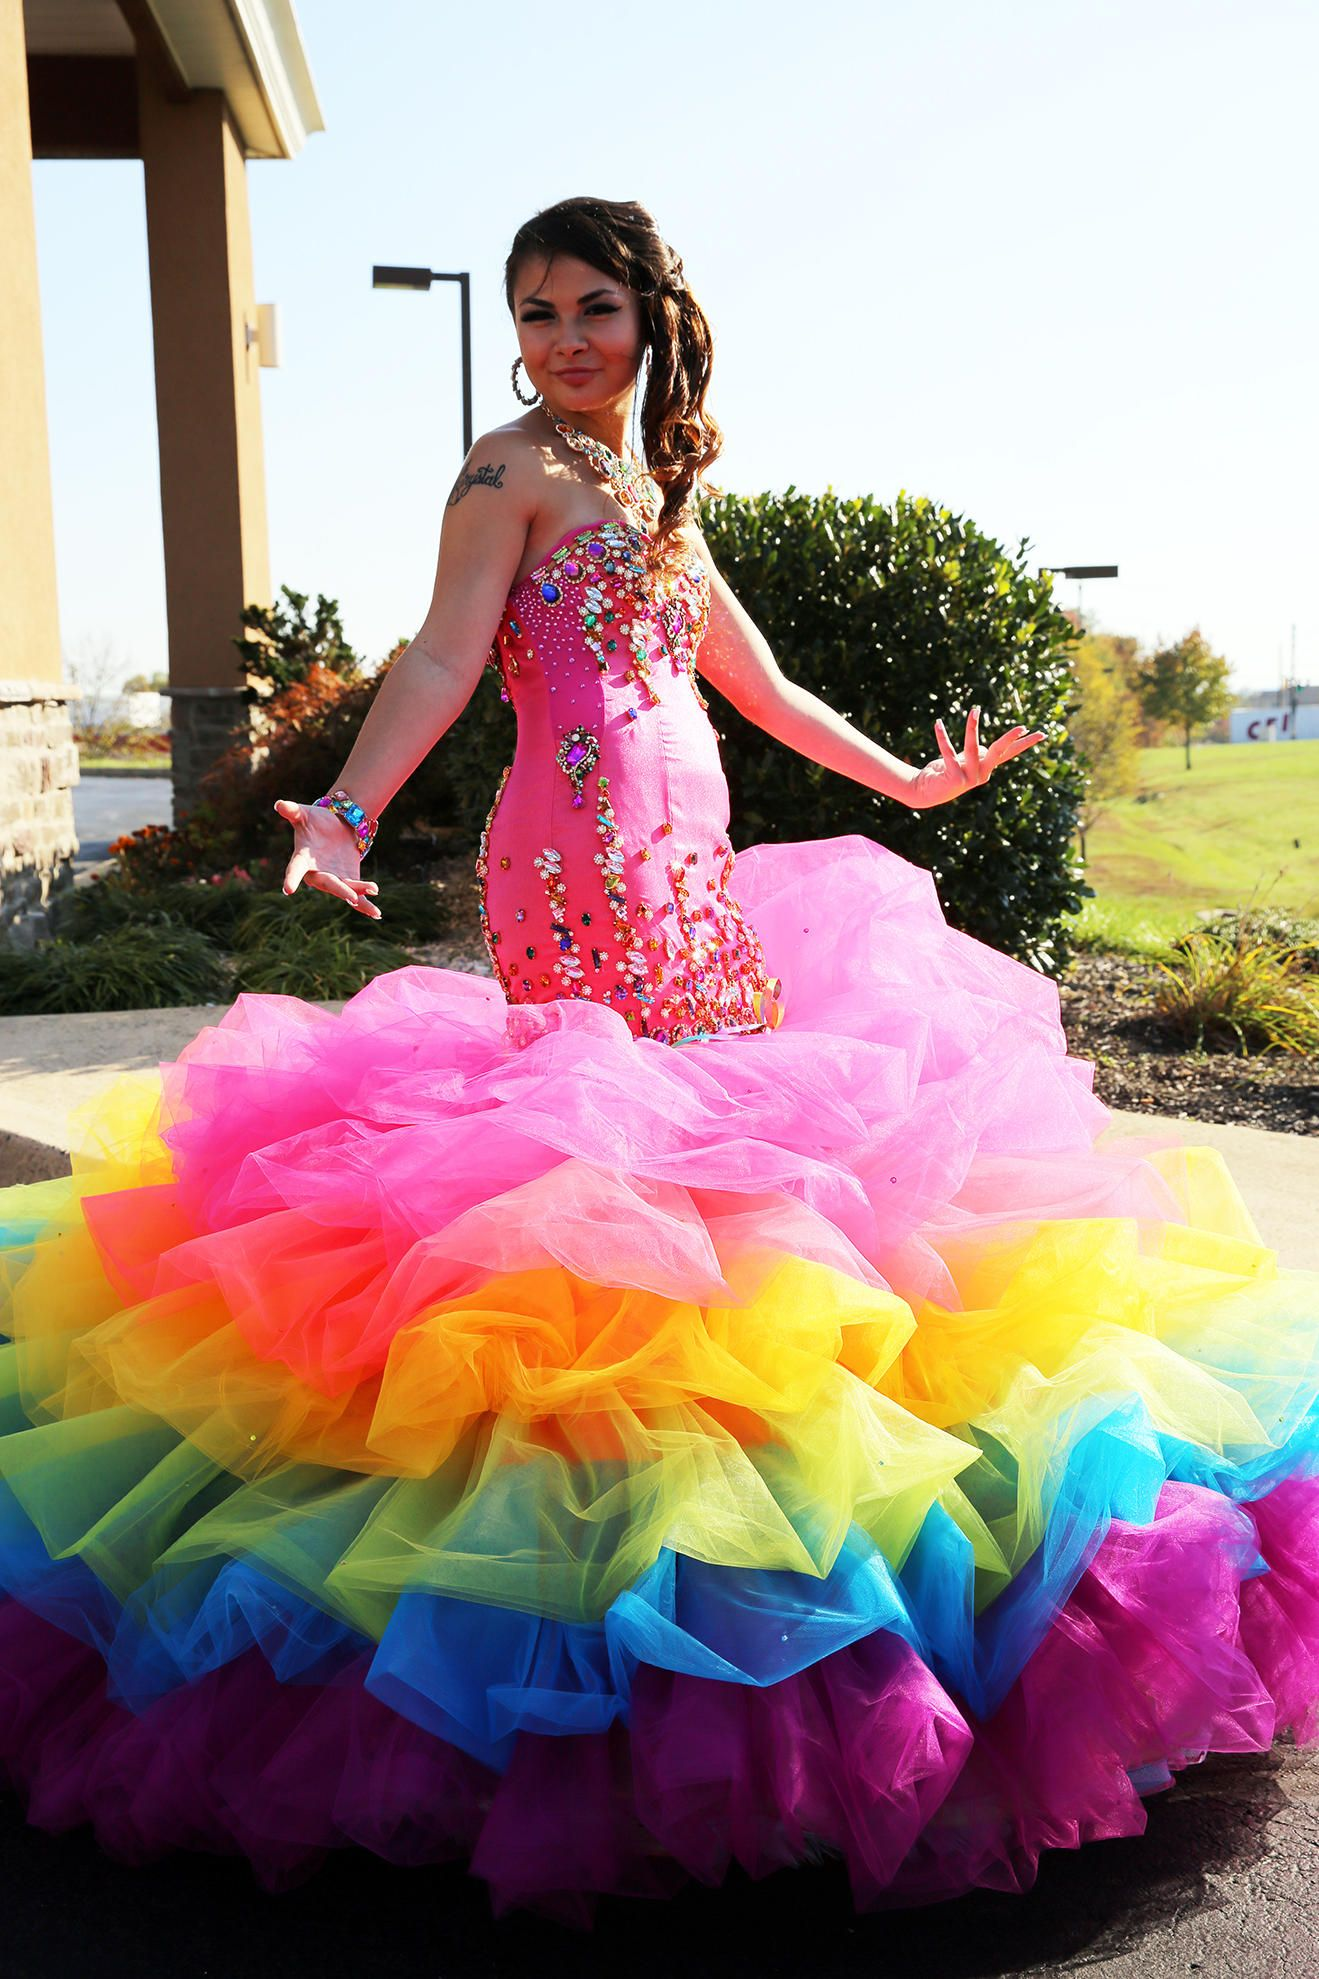 Greek Wedding and Rainbow Sweet 16 Dress Pictures | Vestido de ...